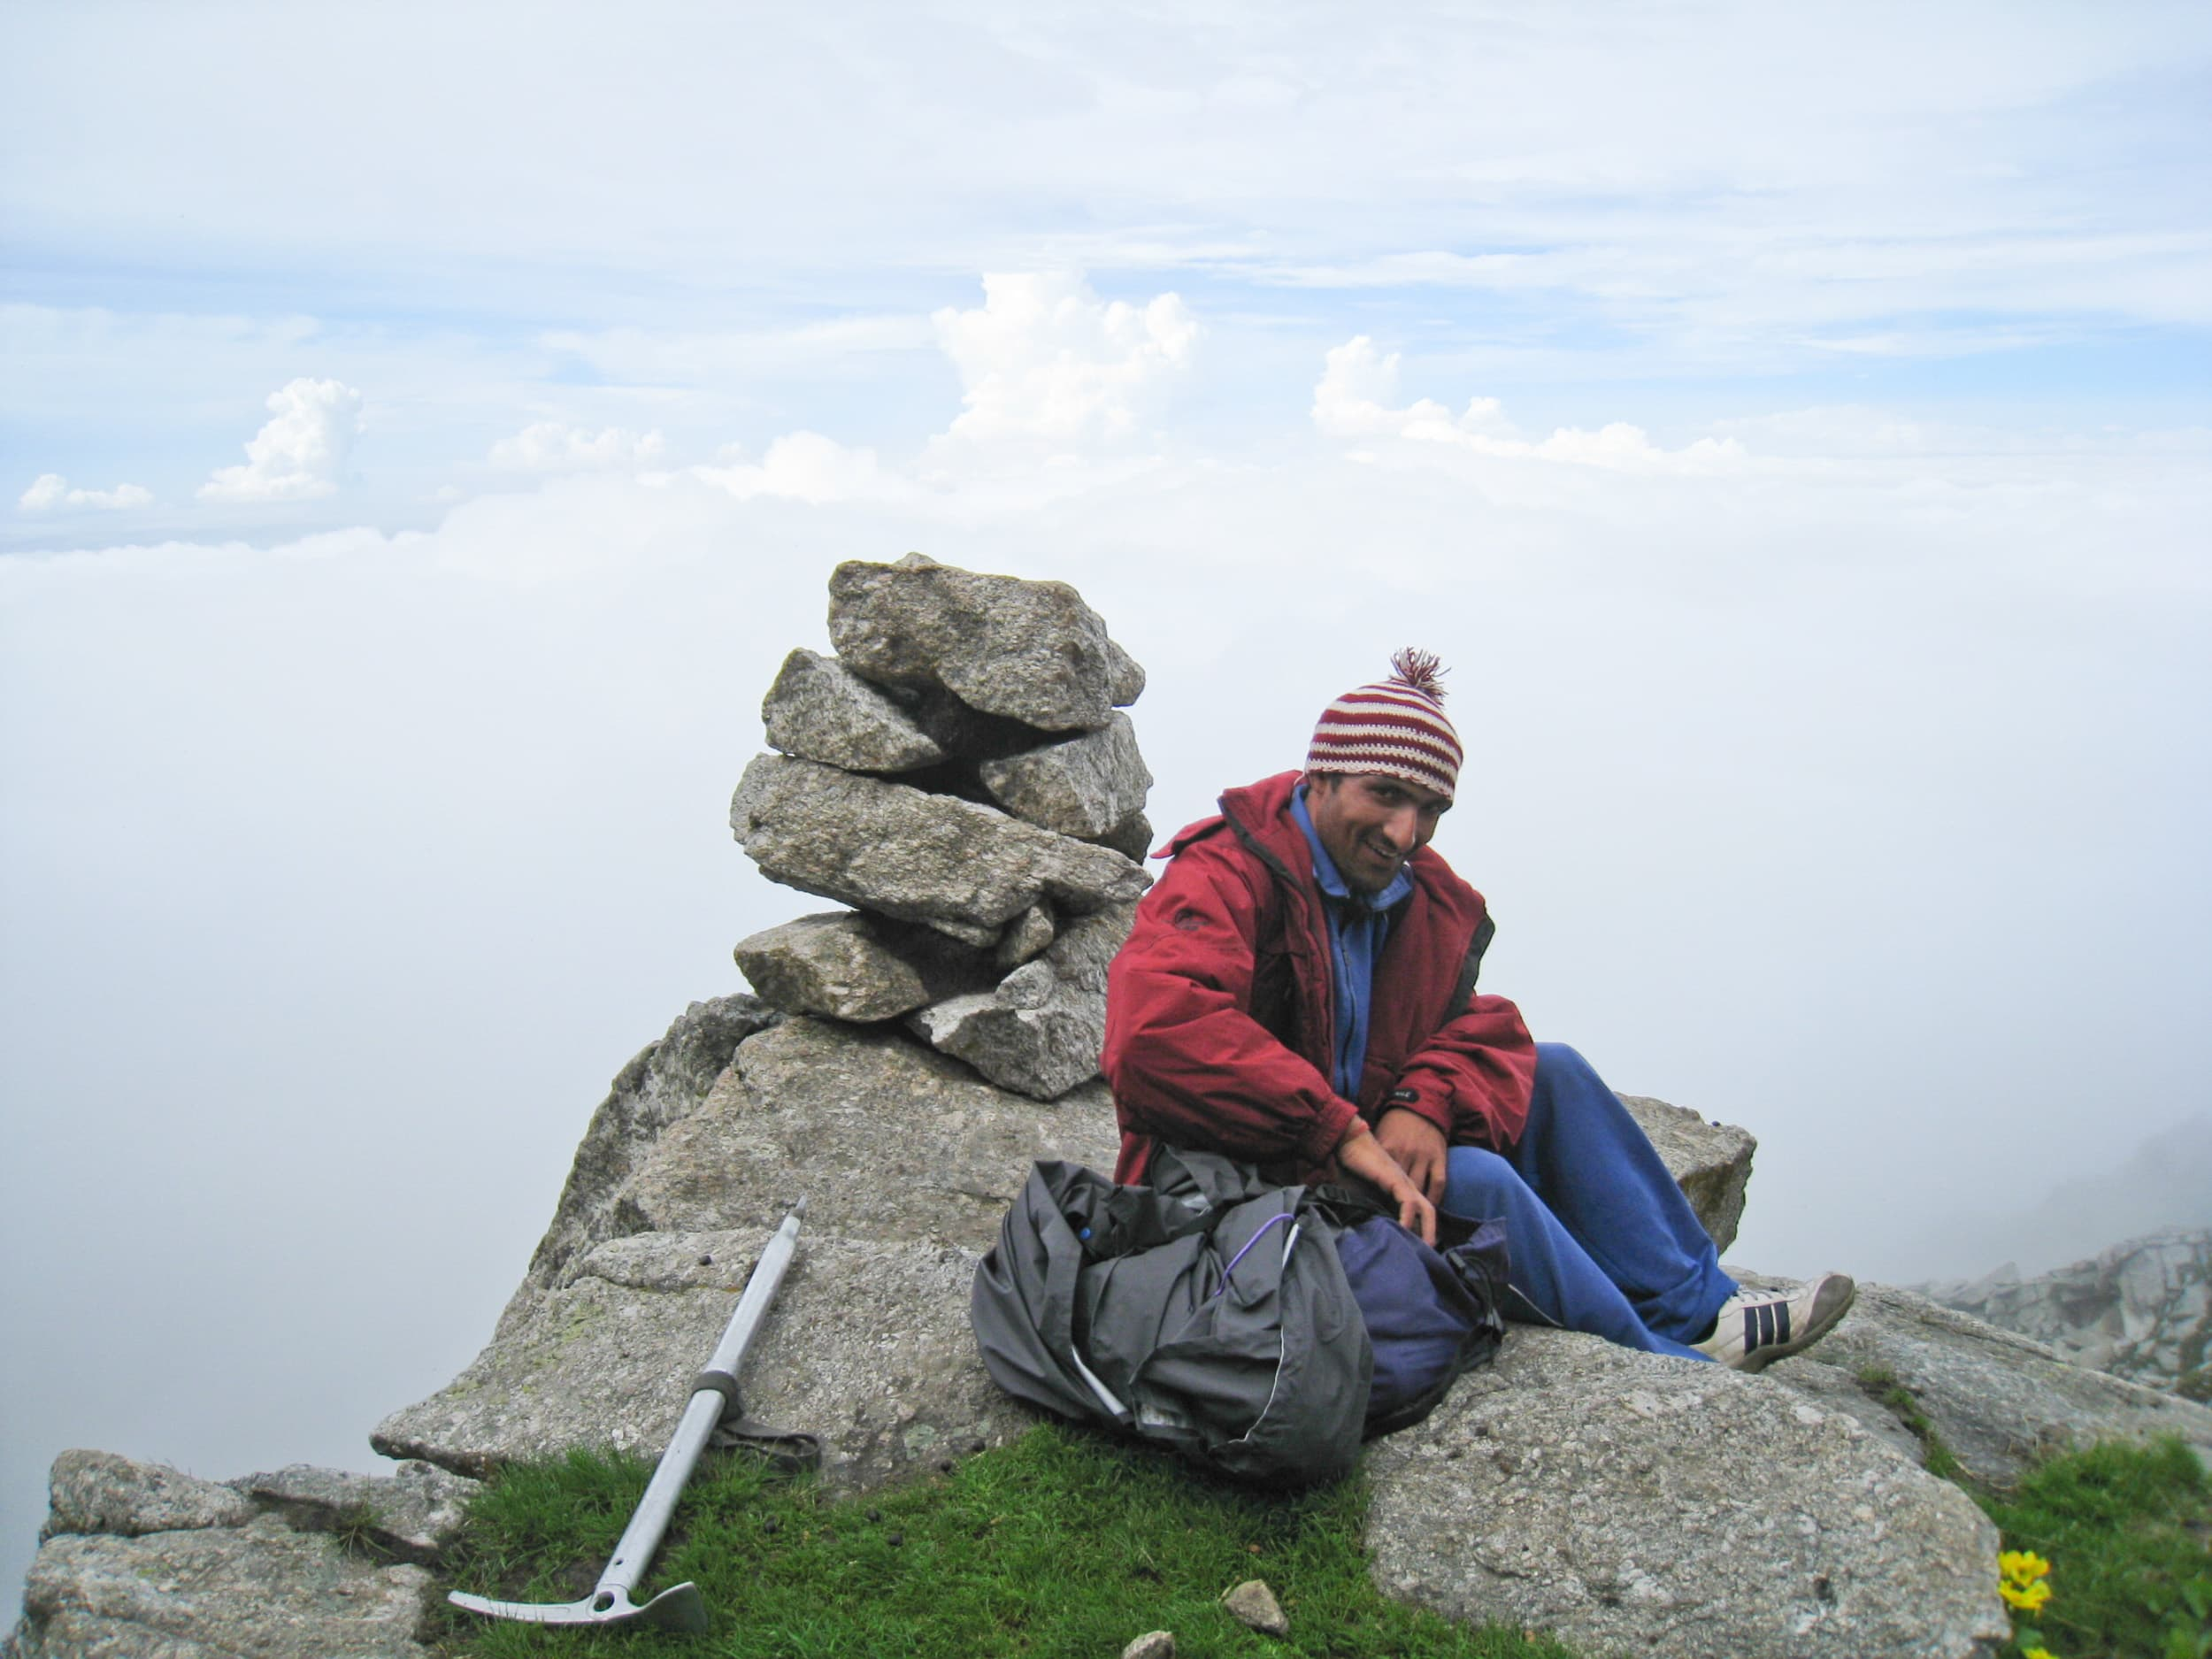 Ashok, an adventure travel guide in northern India